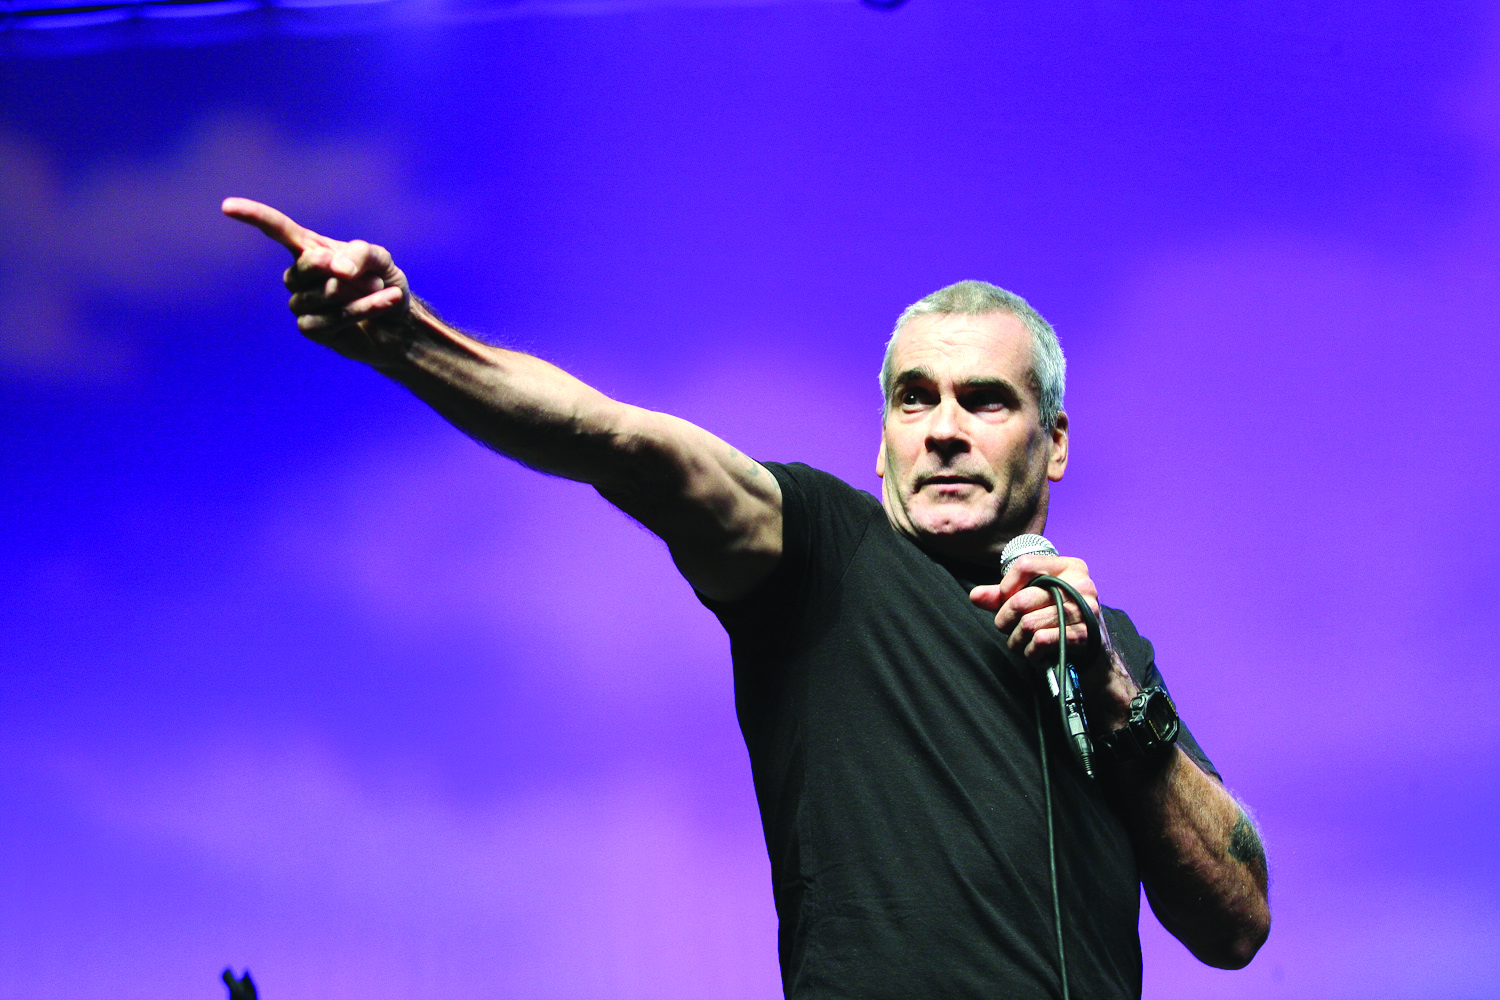 Writer and musician Henry Rollins was featured at Bonnaroo Music Festival in 2011. Photo courtesy of Melanie Levi/ Flickr.